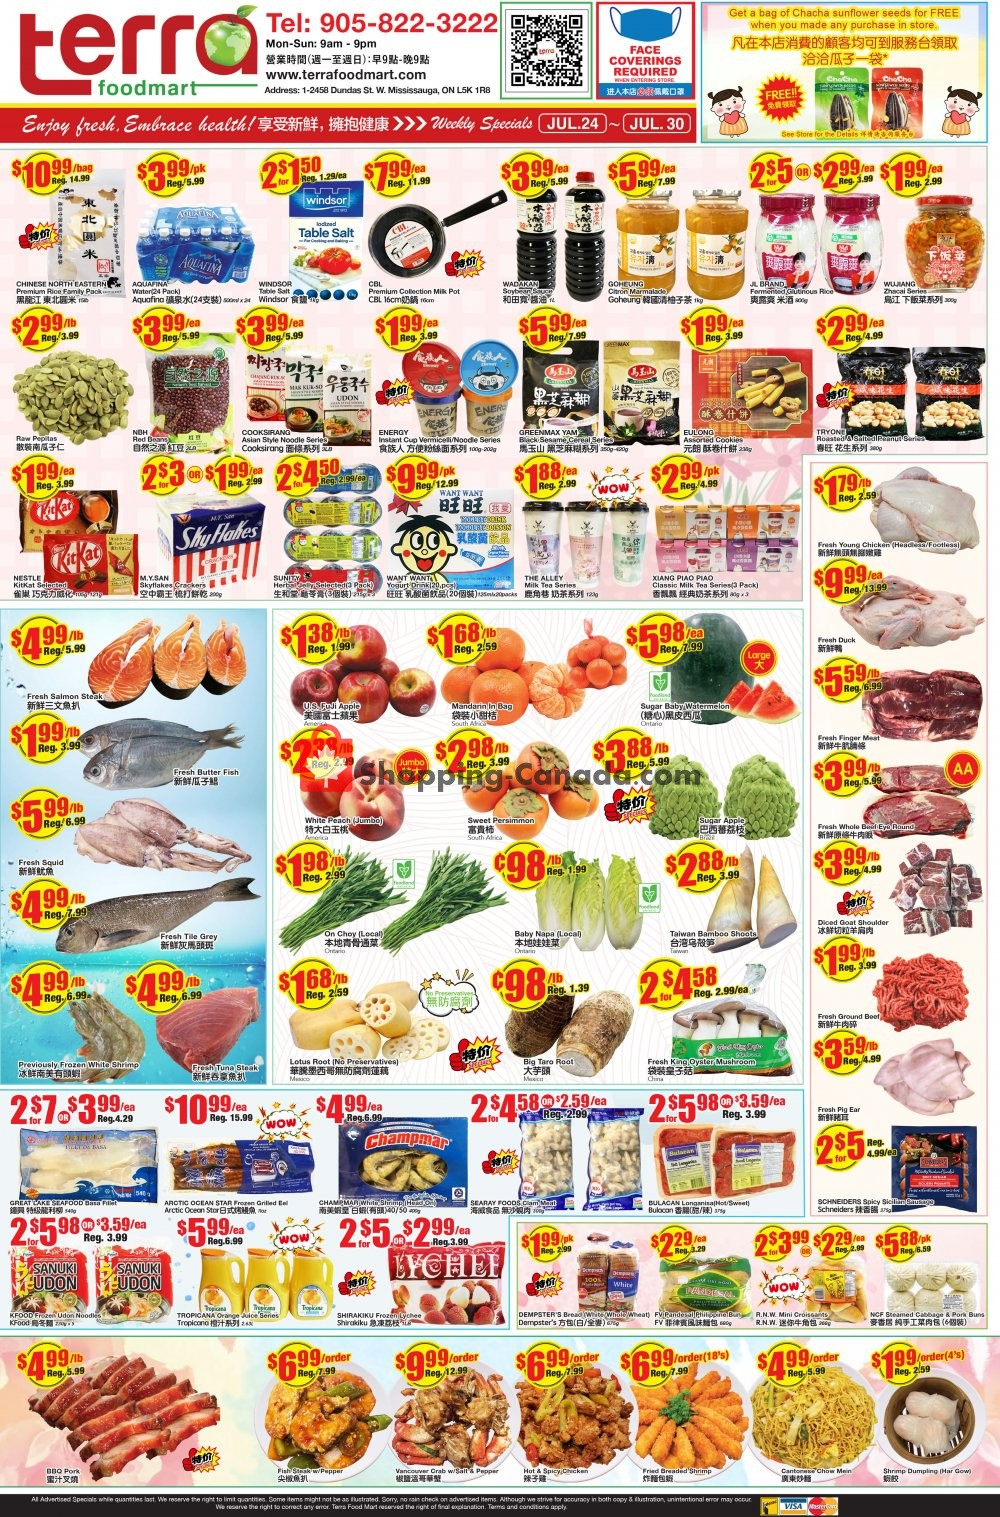 Flyer Terra Foodmart Canada - from Friday July 24, 2020 to Thursday July 30, 2020